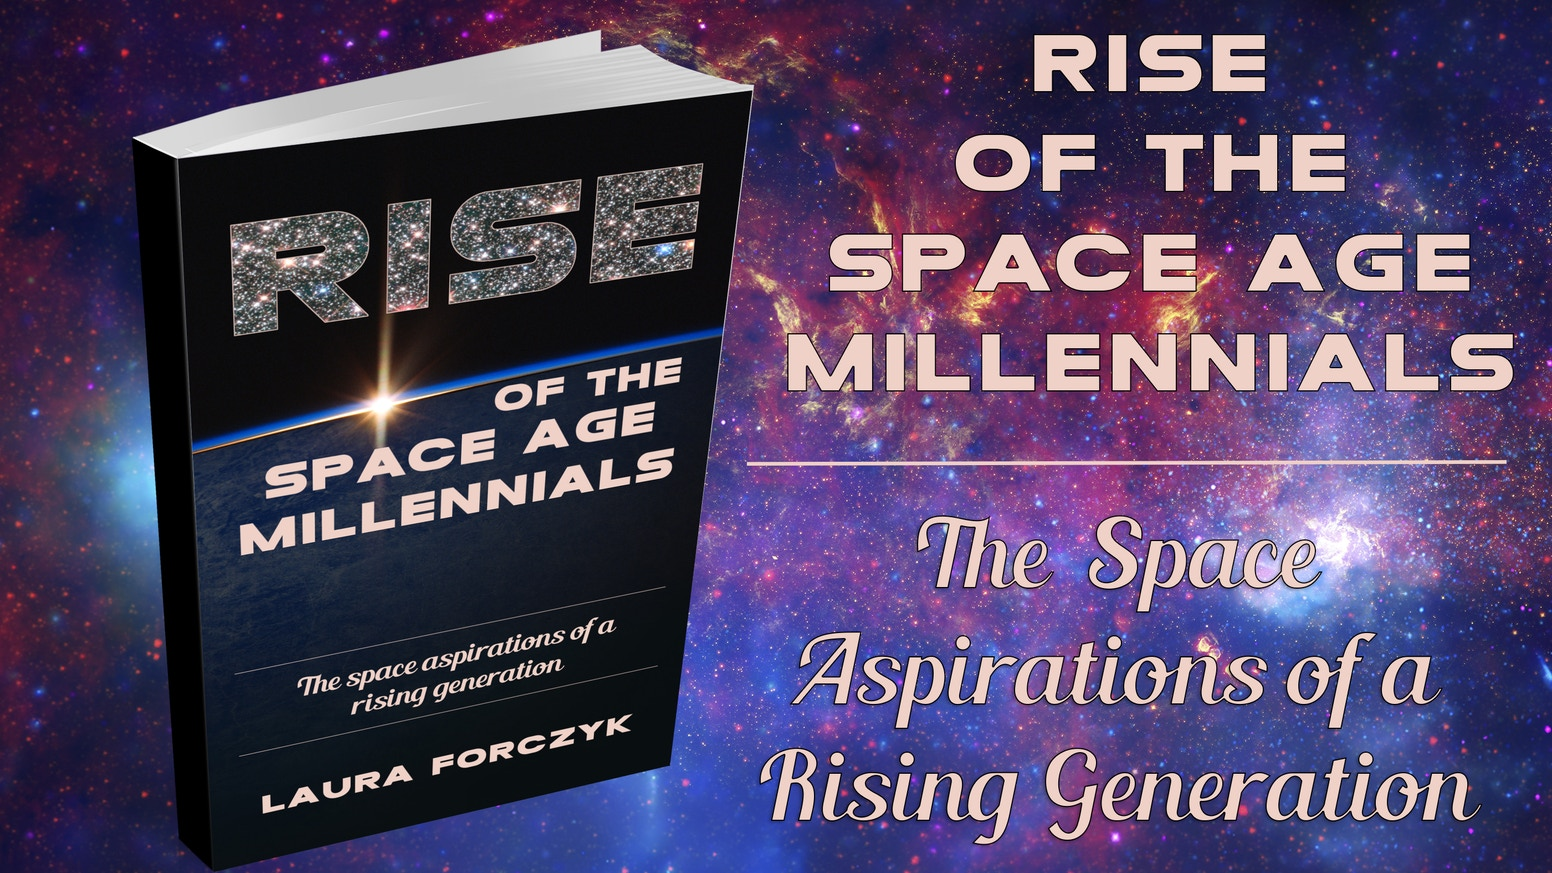 A book to tell the story of the space aspirations of a rising generation.